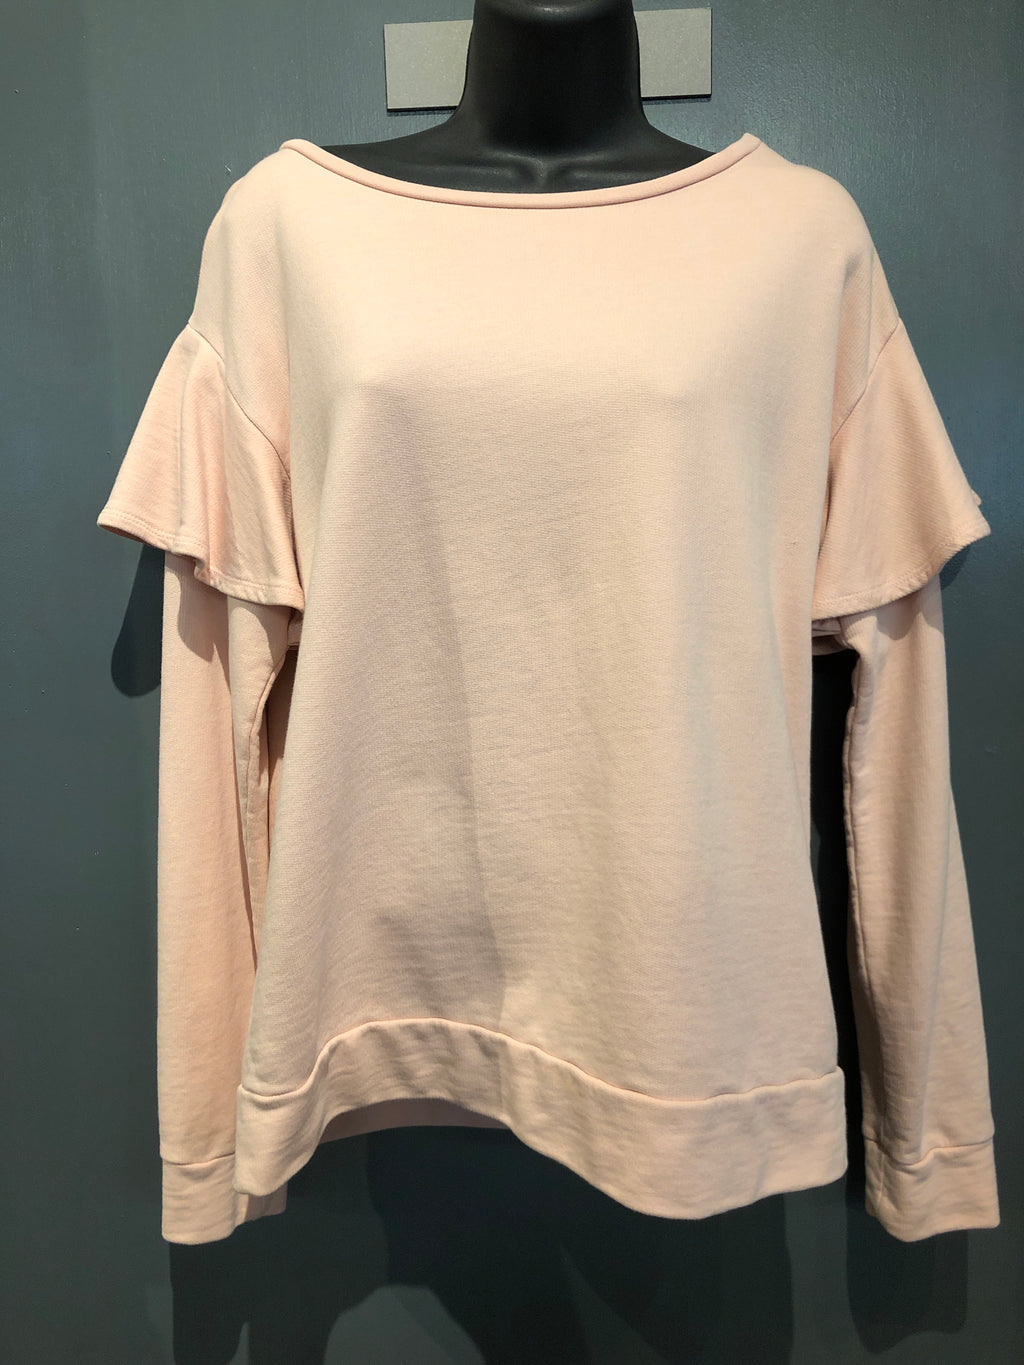 Pink sweatshirt with ruffle sleeves size small